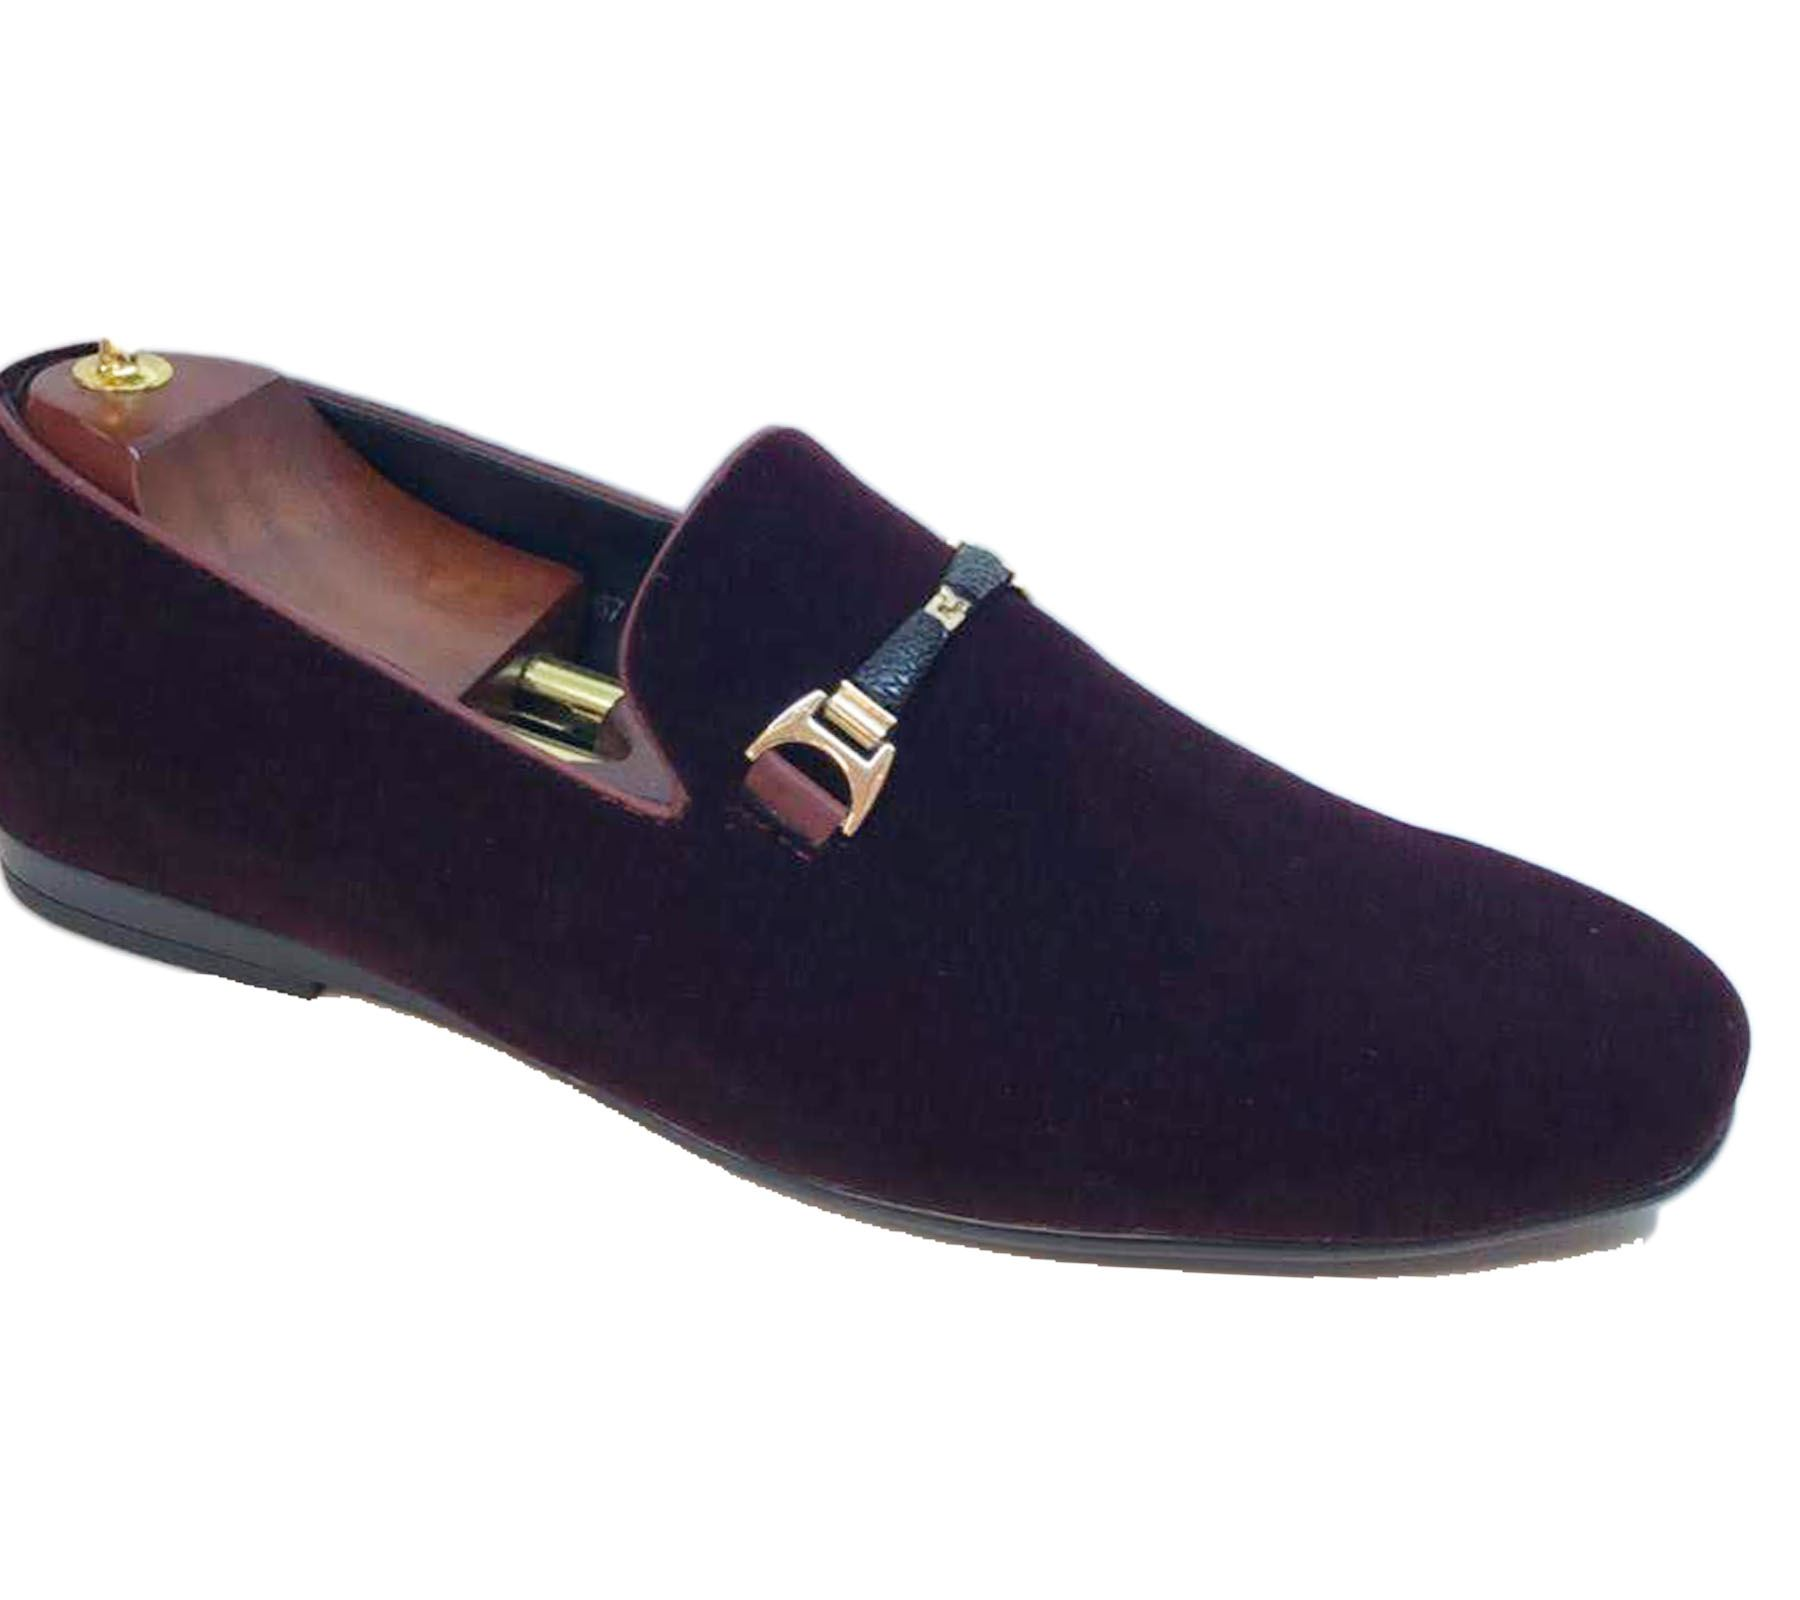 Mens-Loafers-Mocassin-Boat-Deck-Shoes-Flat-Slip-On-Driving-Casual-Smart-Pumps thumbnail 22